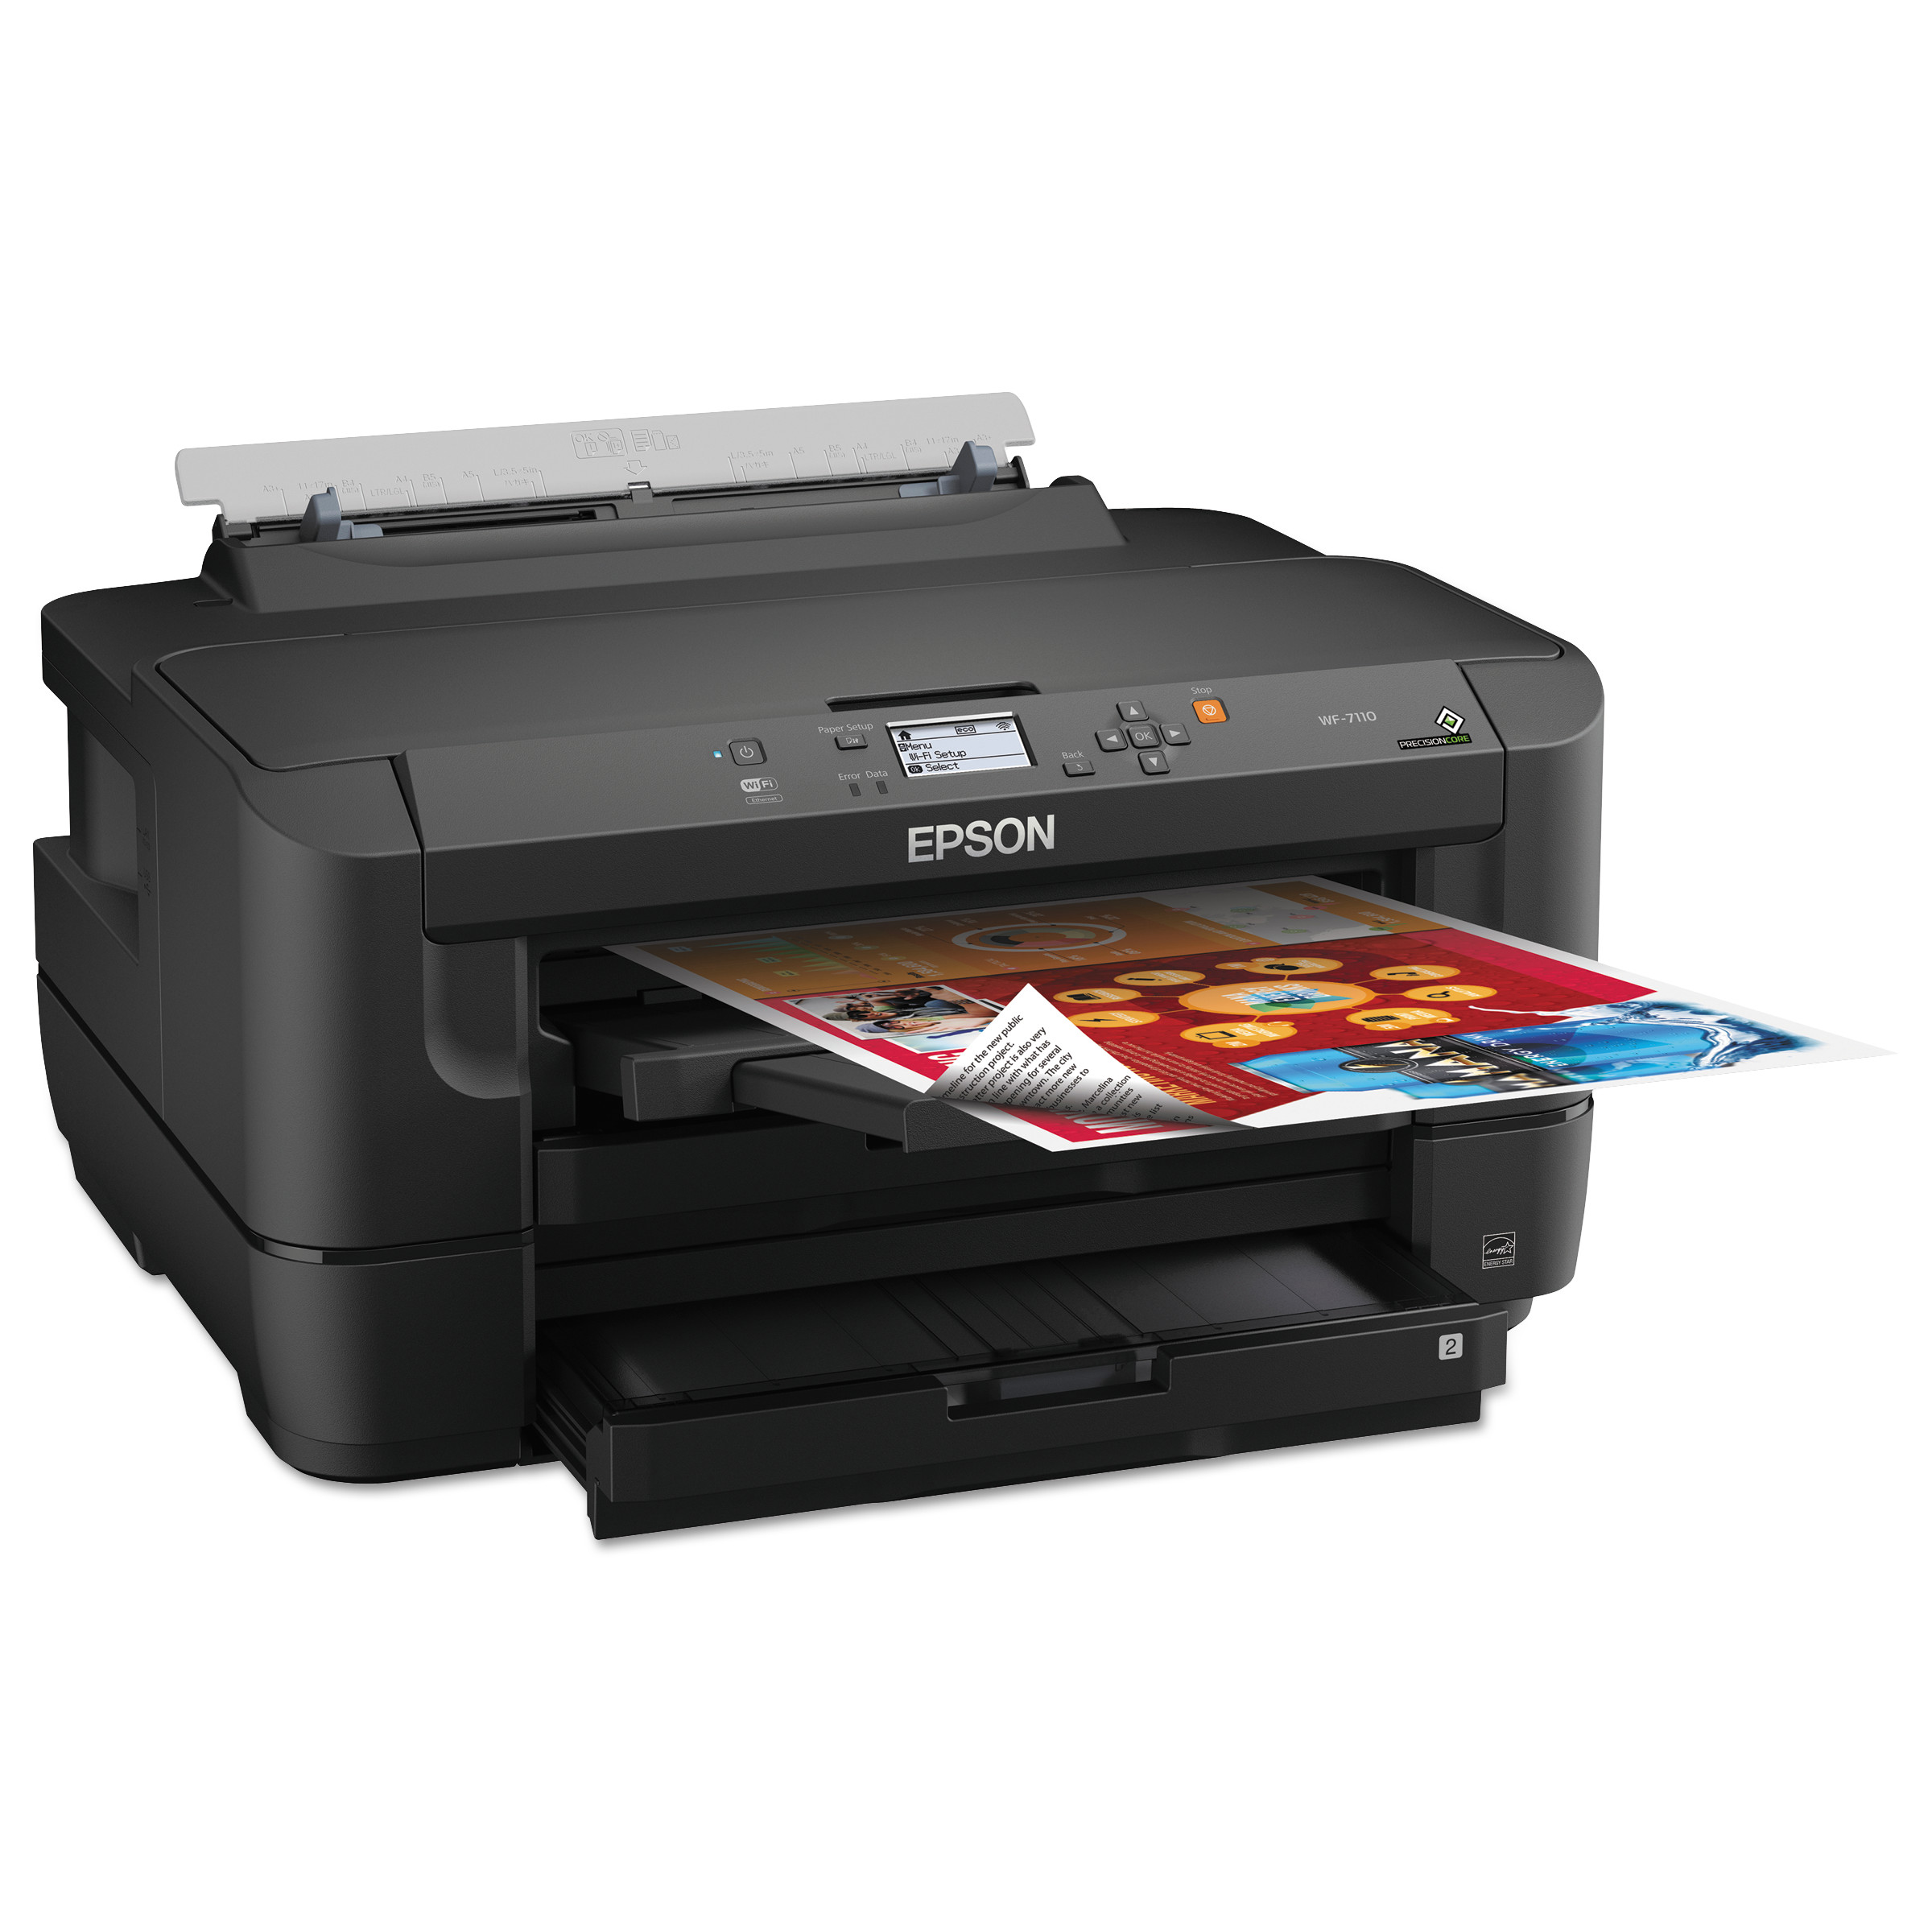 Epson WorkForce WF-7110 Wireless Inkjet Printer by Epson